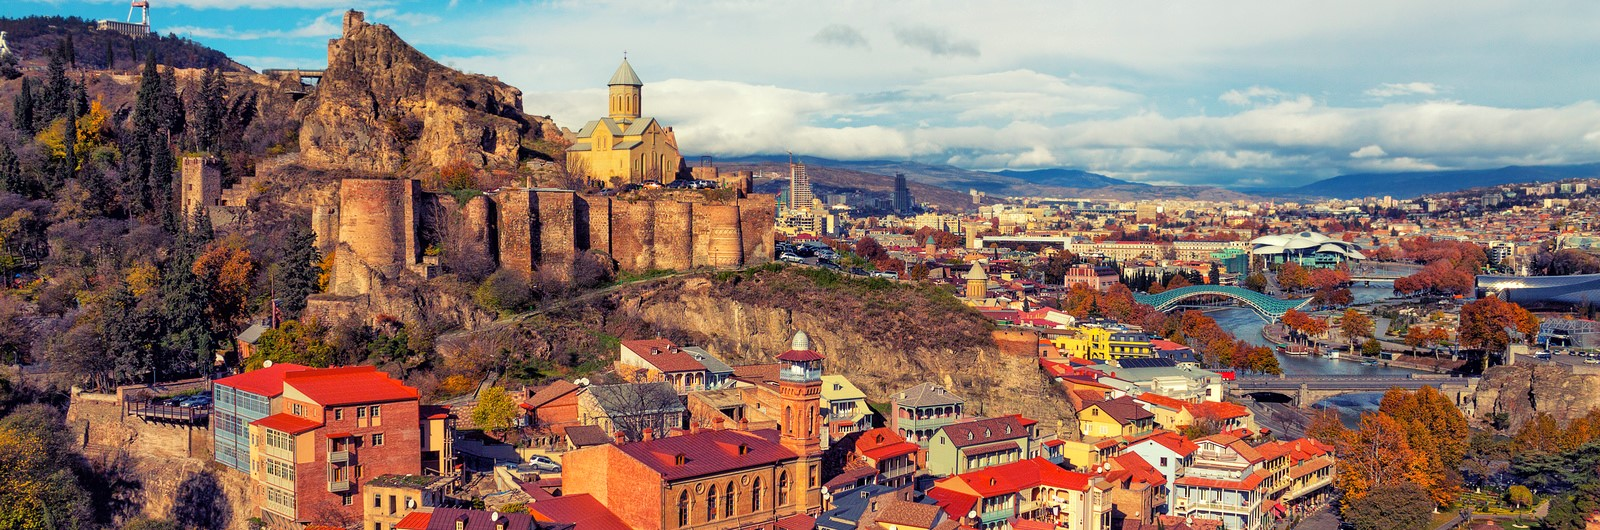 tbilisi city header